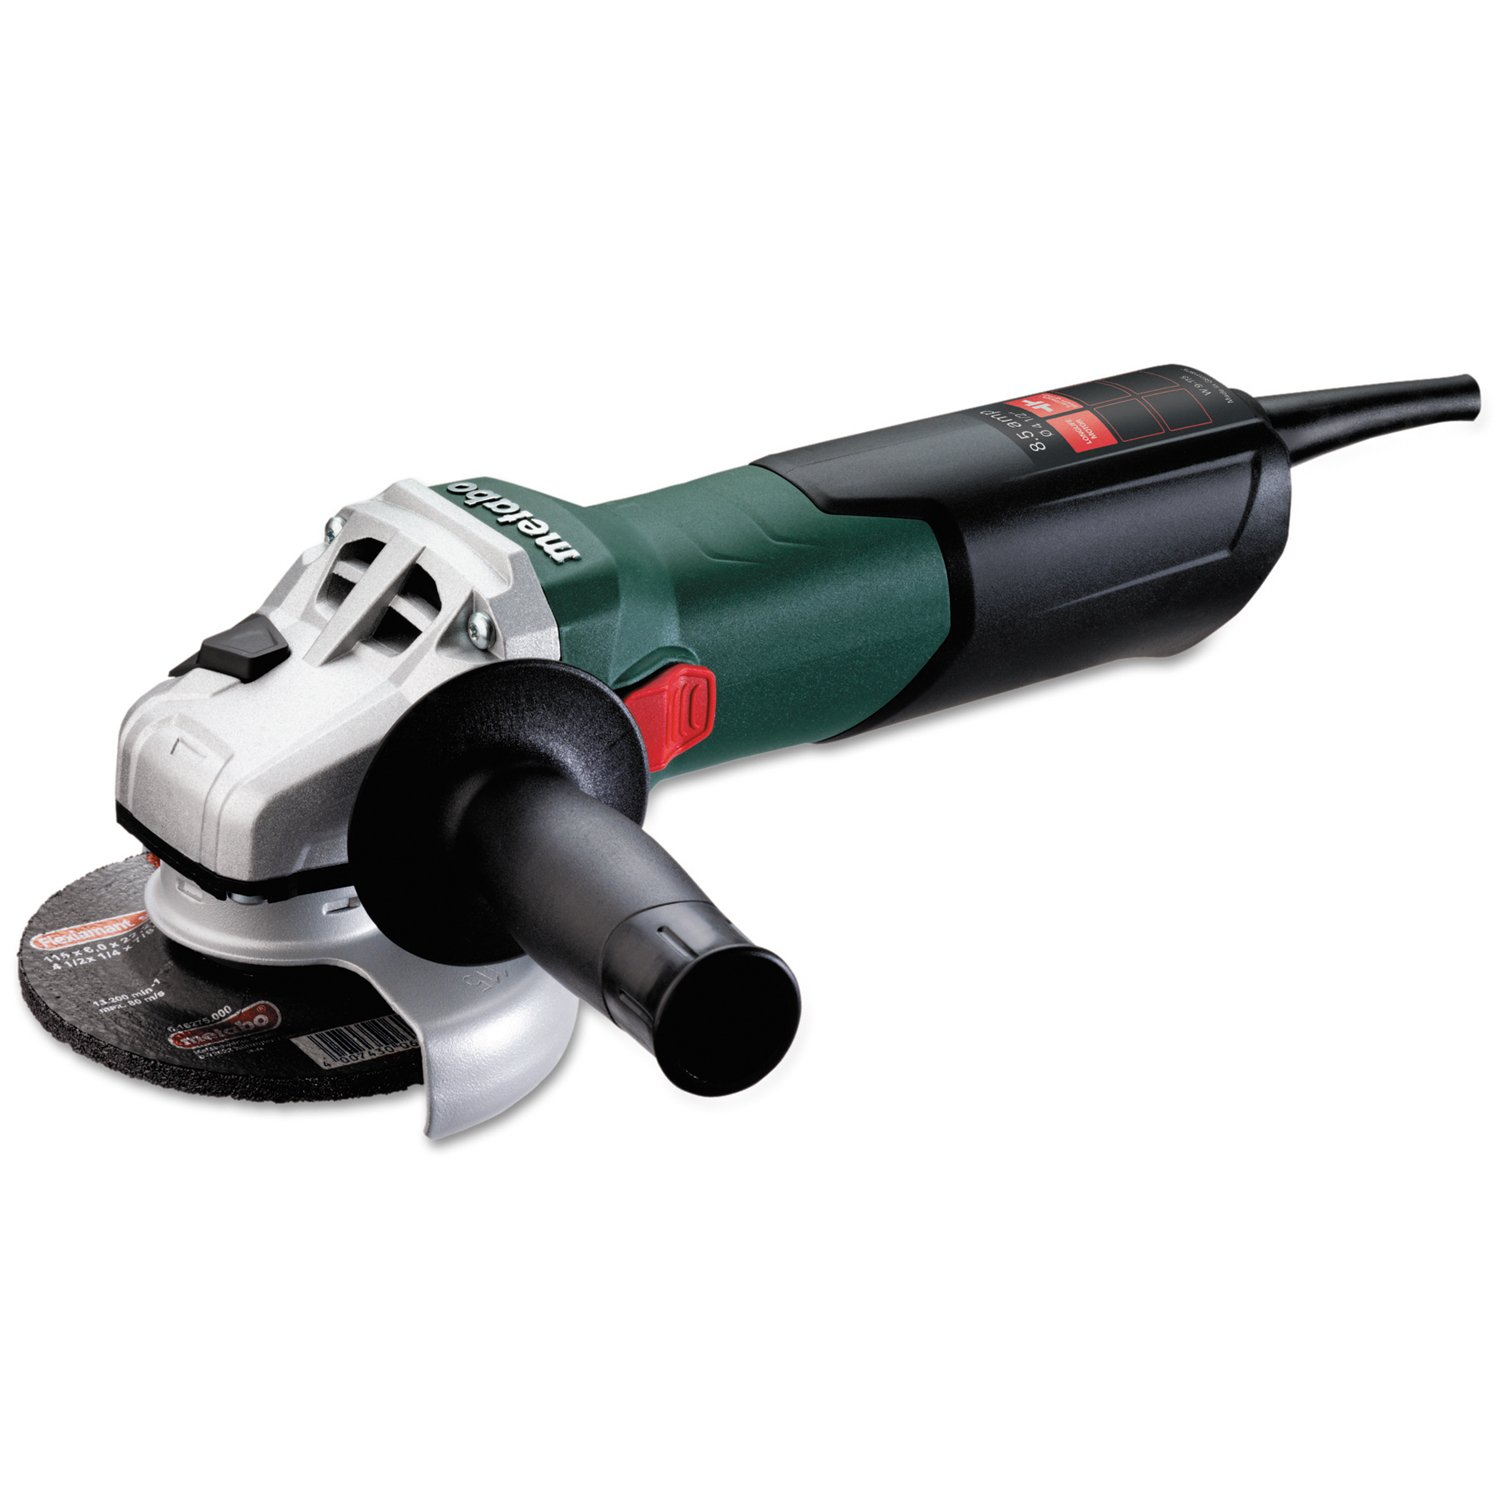 Metabo W9-115 8.5 Amp 10,500 rpm Angle Grinder with Lock-On Sliding Switch, 4-1/2''